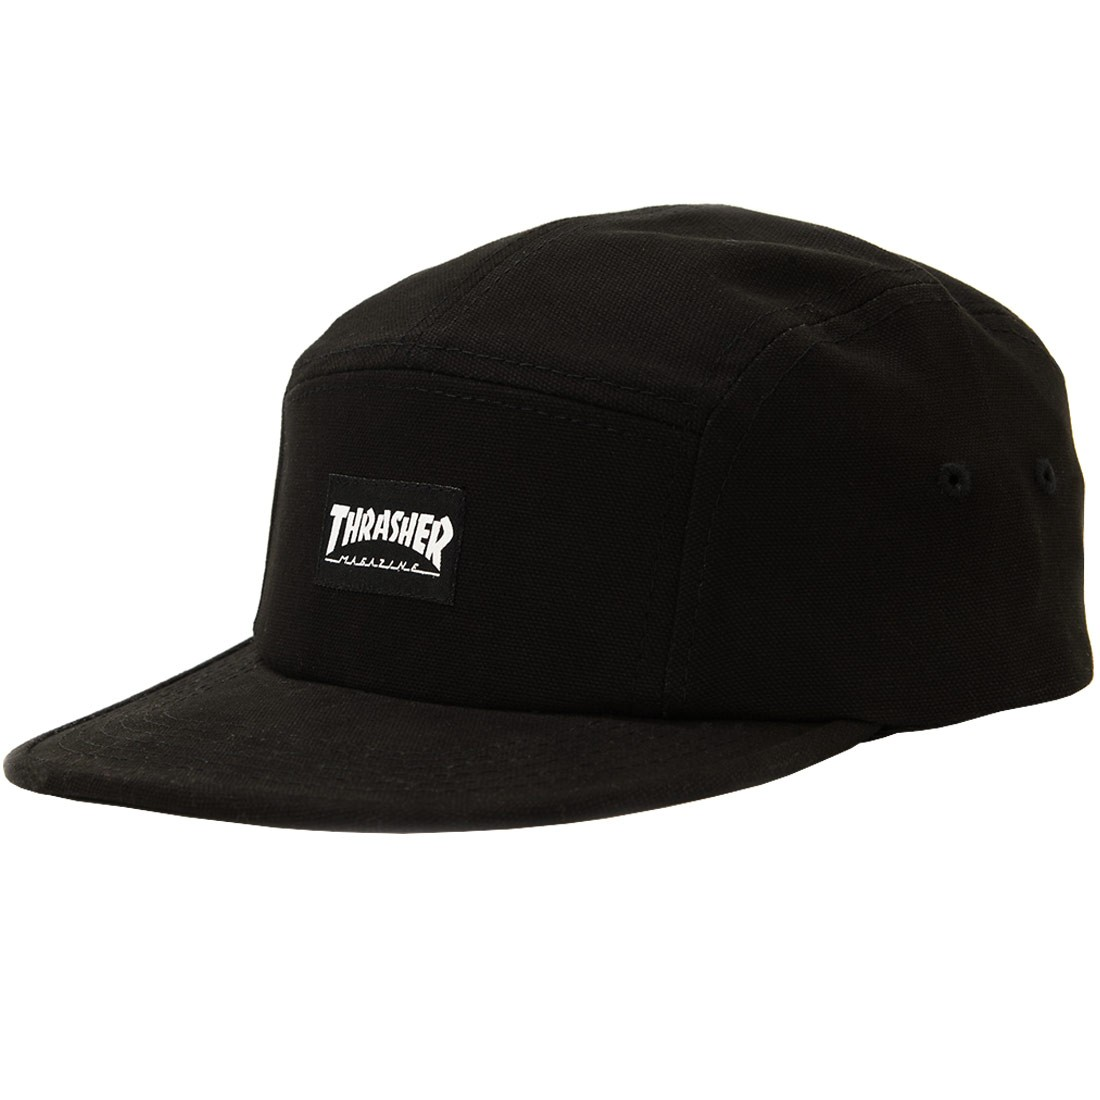 c2940e5a230 Thrasher 5 Panel Hat - Black